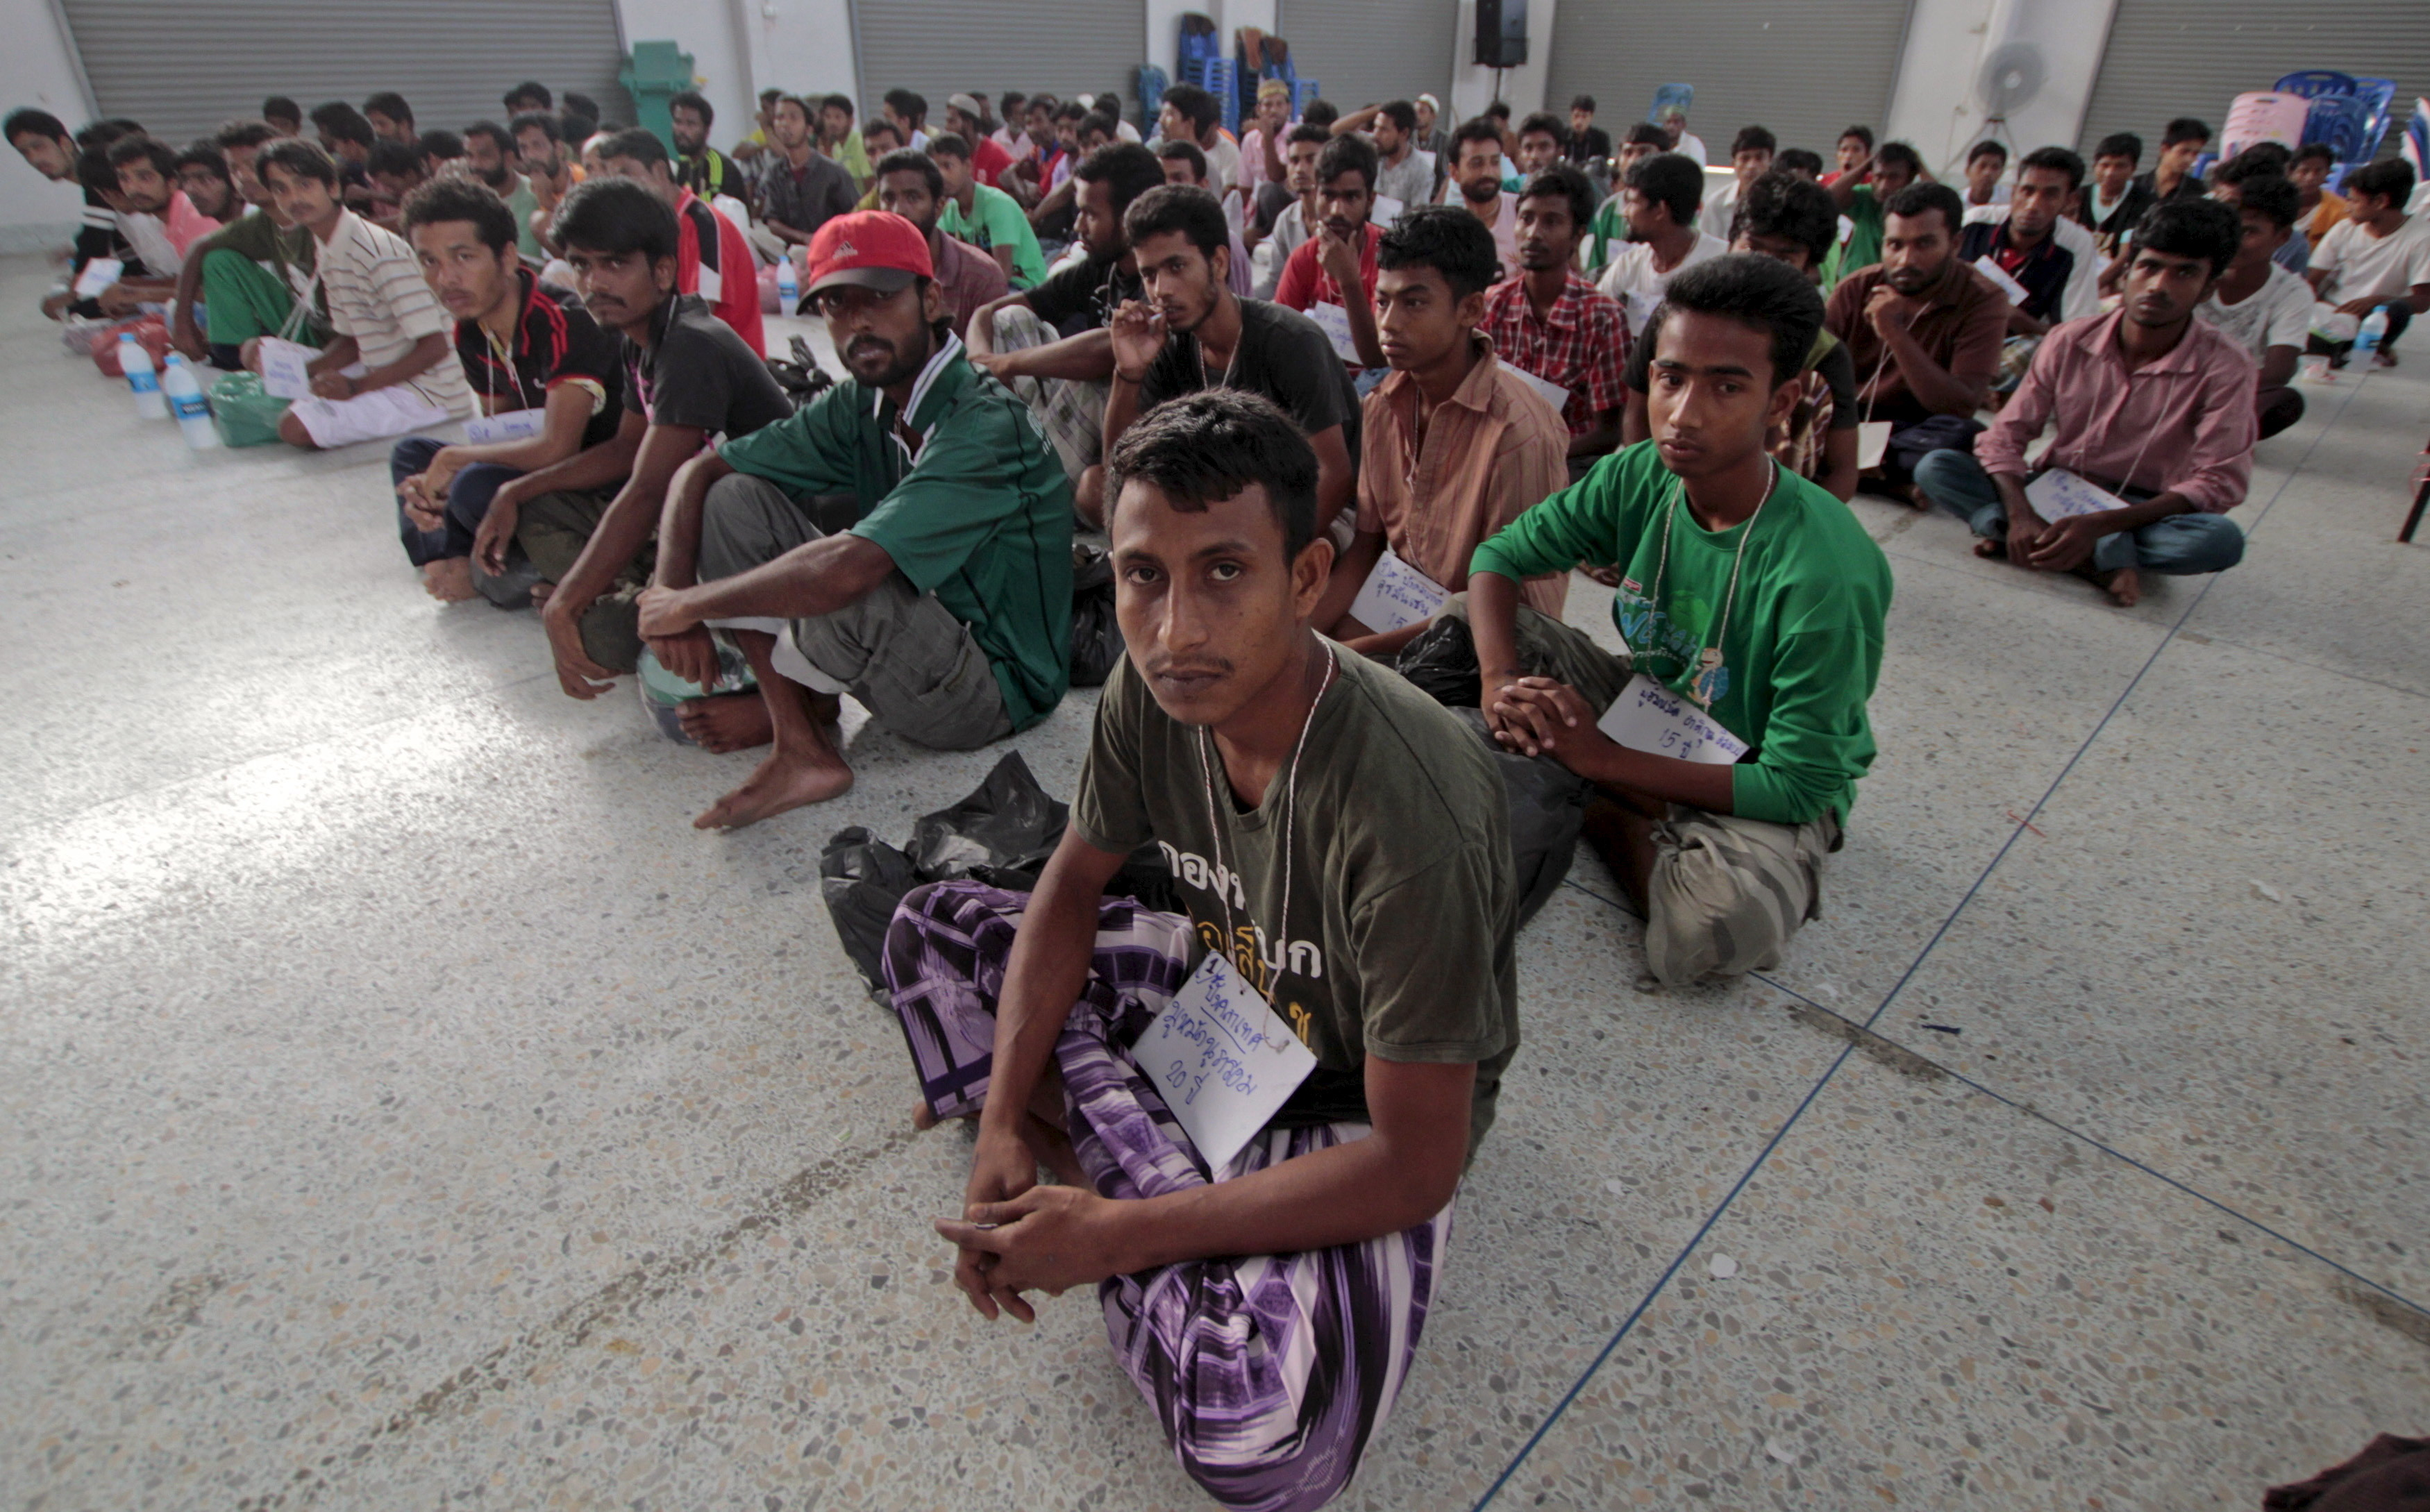 Suspected Rohingya migrants from Myanmar and Bangladesh rest at Rattaphum district hall in Thailand's southern Songkhla province May 9, 2015. Thai authorities on Saturday questioned the more than 100 migrants discovered in the country's south to determine whether they were victims of human trafficking, as Thailand races to meet a deadline to uncover people smuggling camps within its borders.   REUTERS/Surapan Boonthanom      TPX IMAGES OF THE DAY      - GF10000089159